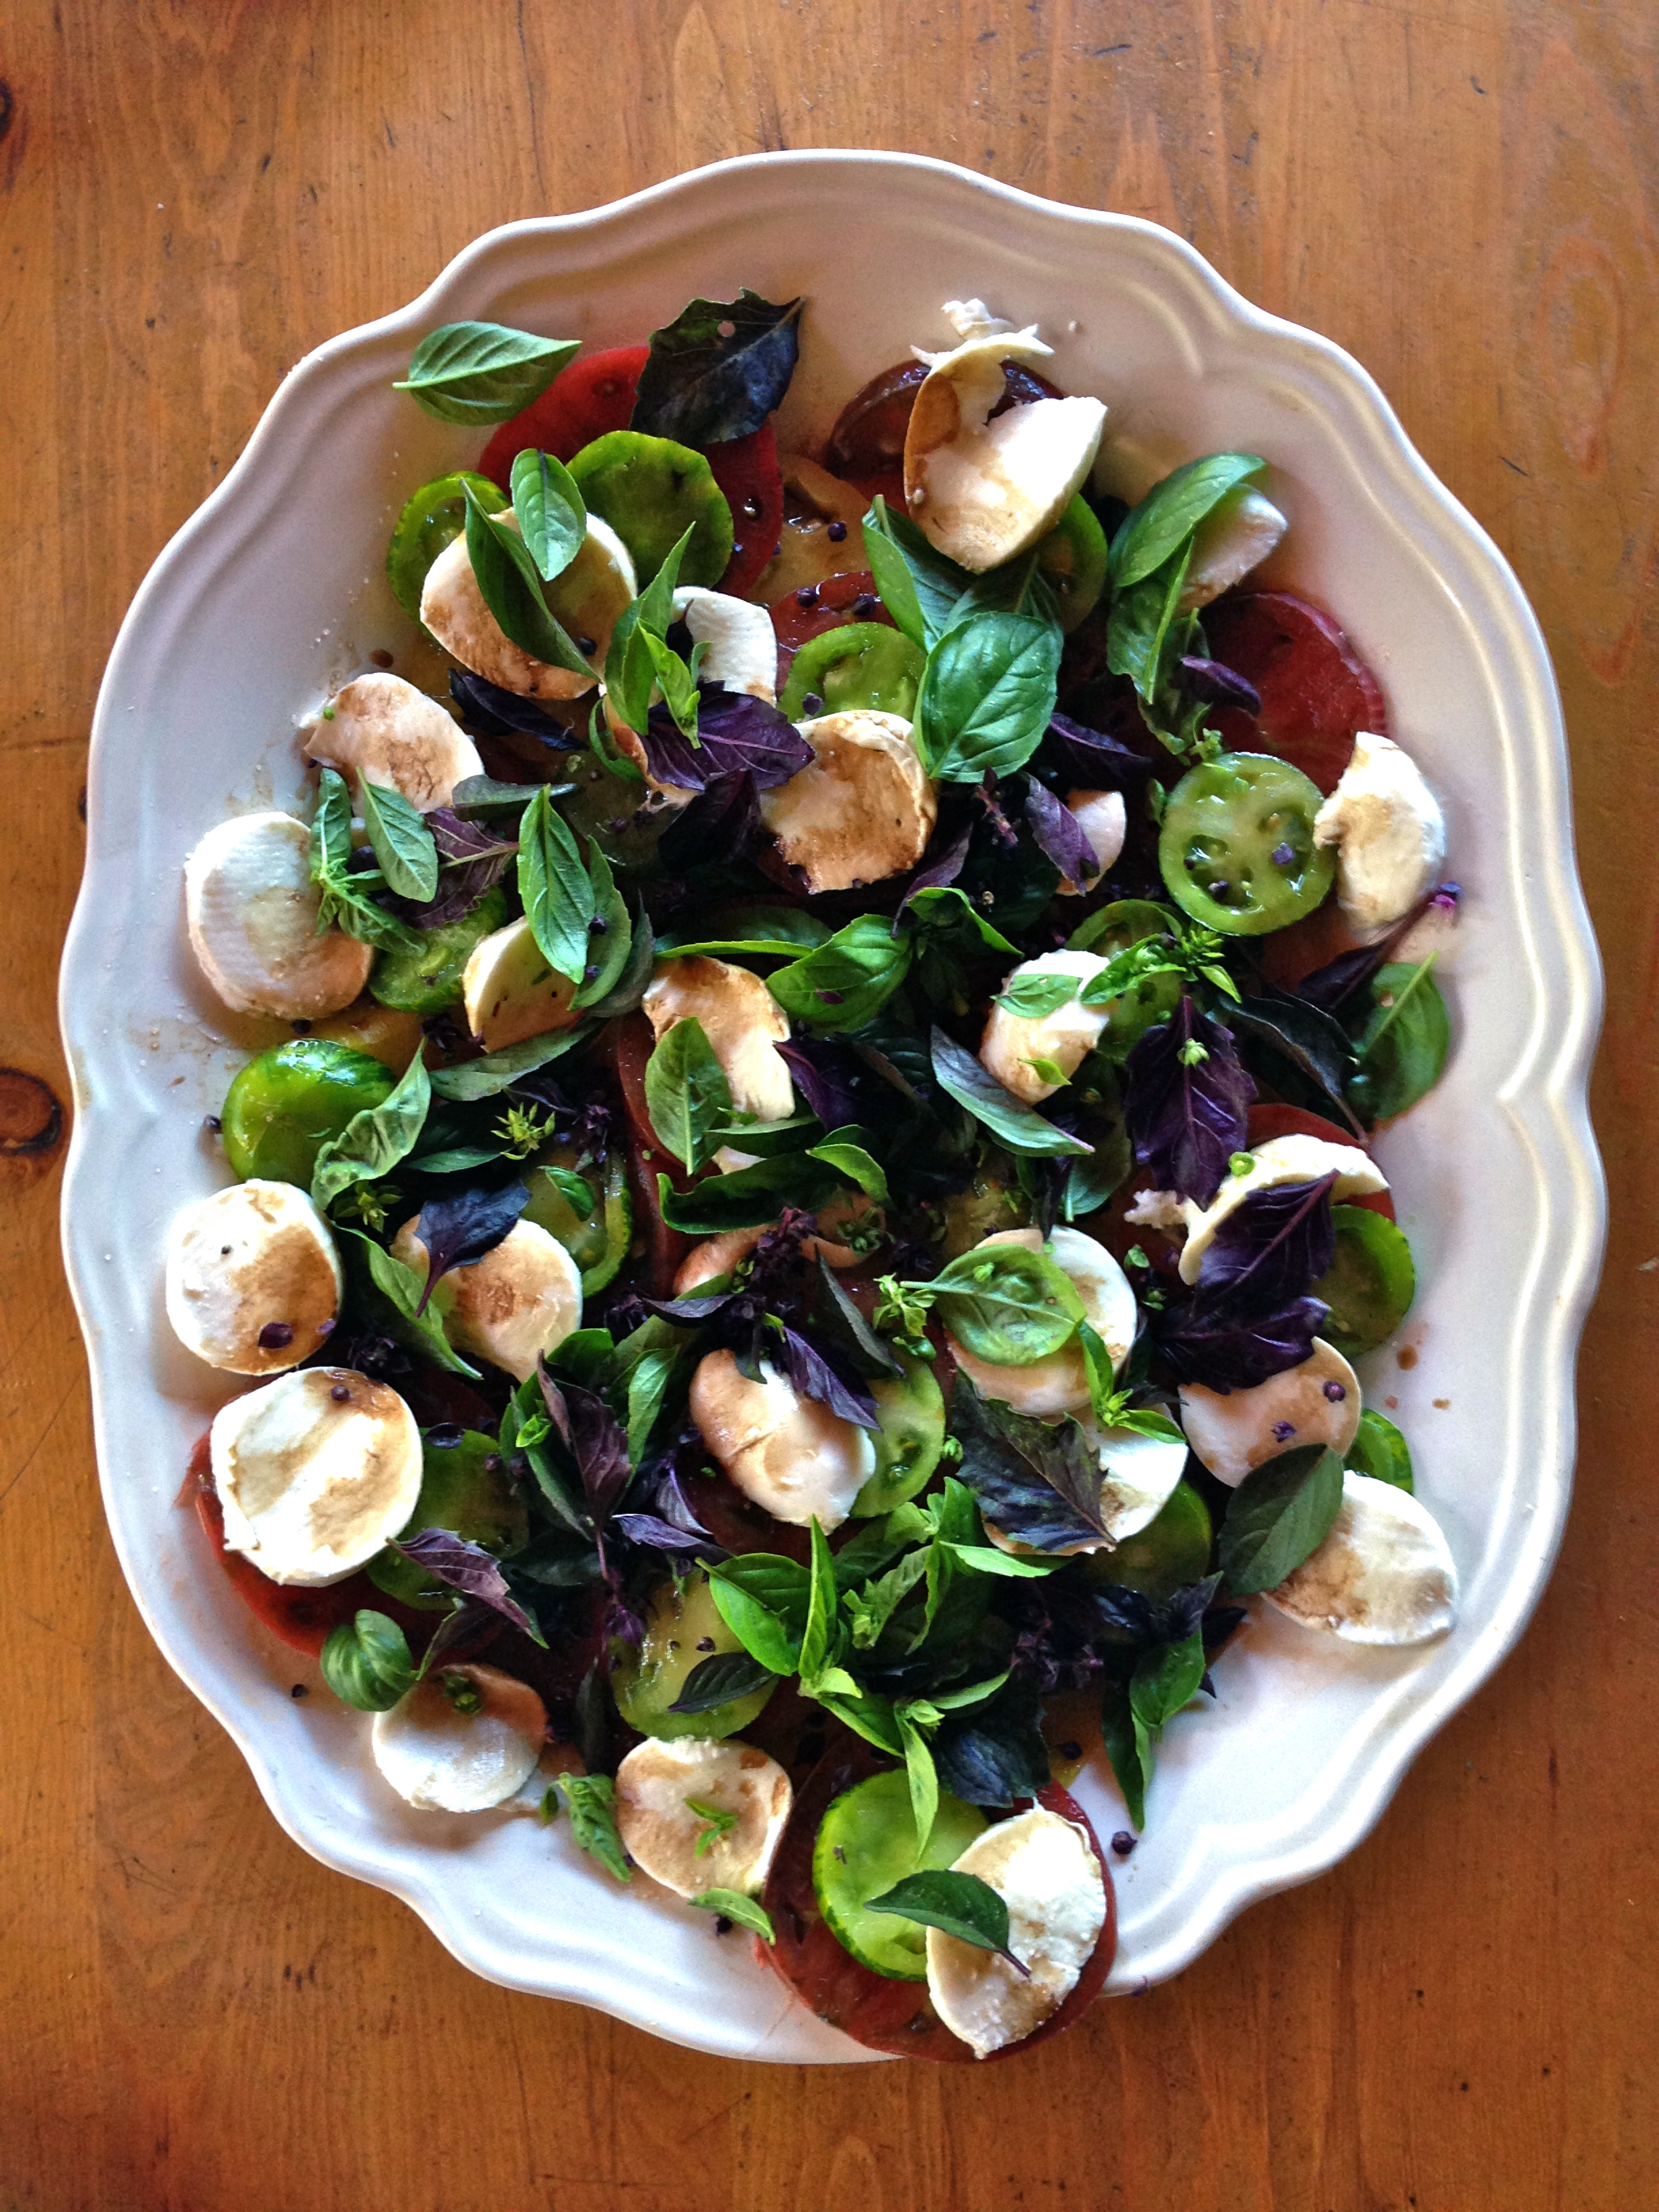 Dea's Insalata Caprese with zebra green+ purple cherokee tomatoes with bocconcini mozzarella, licorice basil, balsamic + olive oil